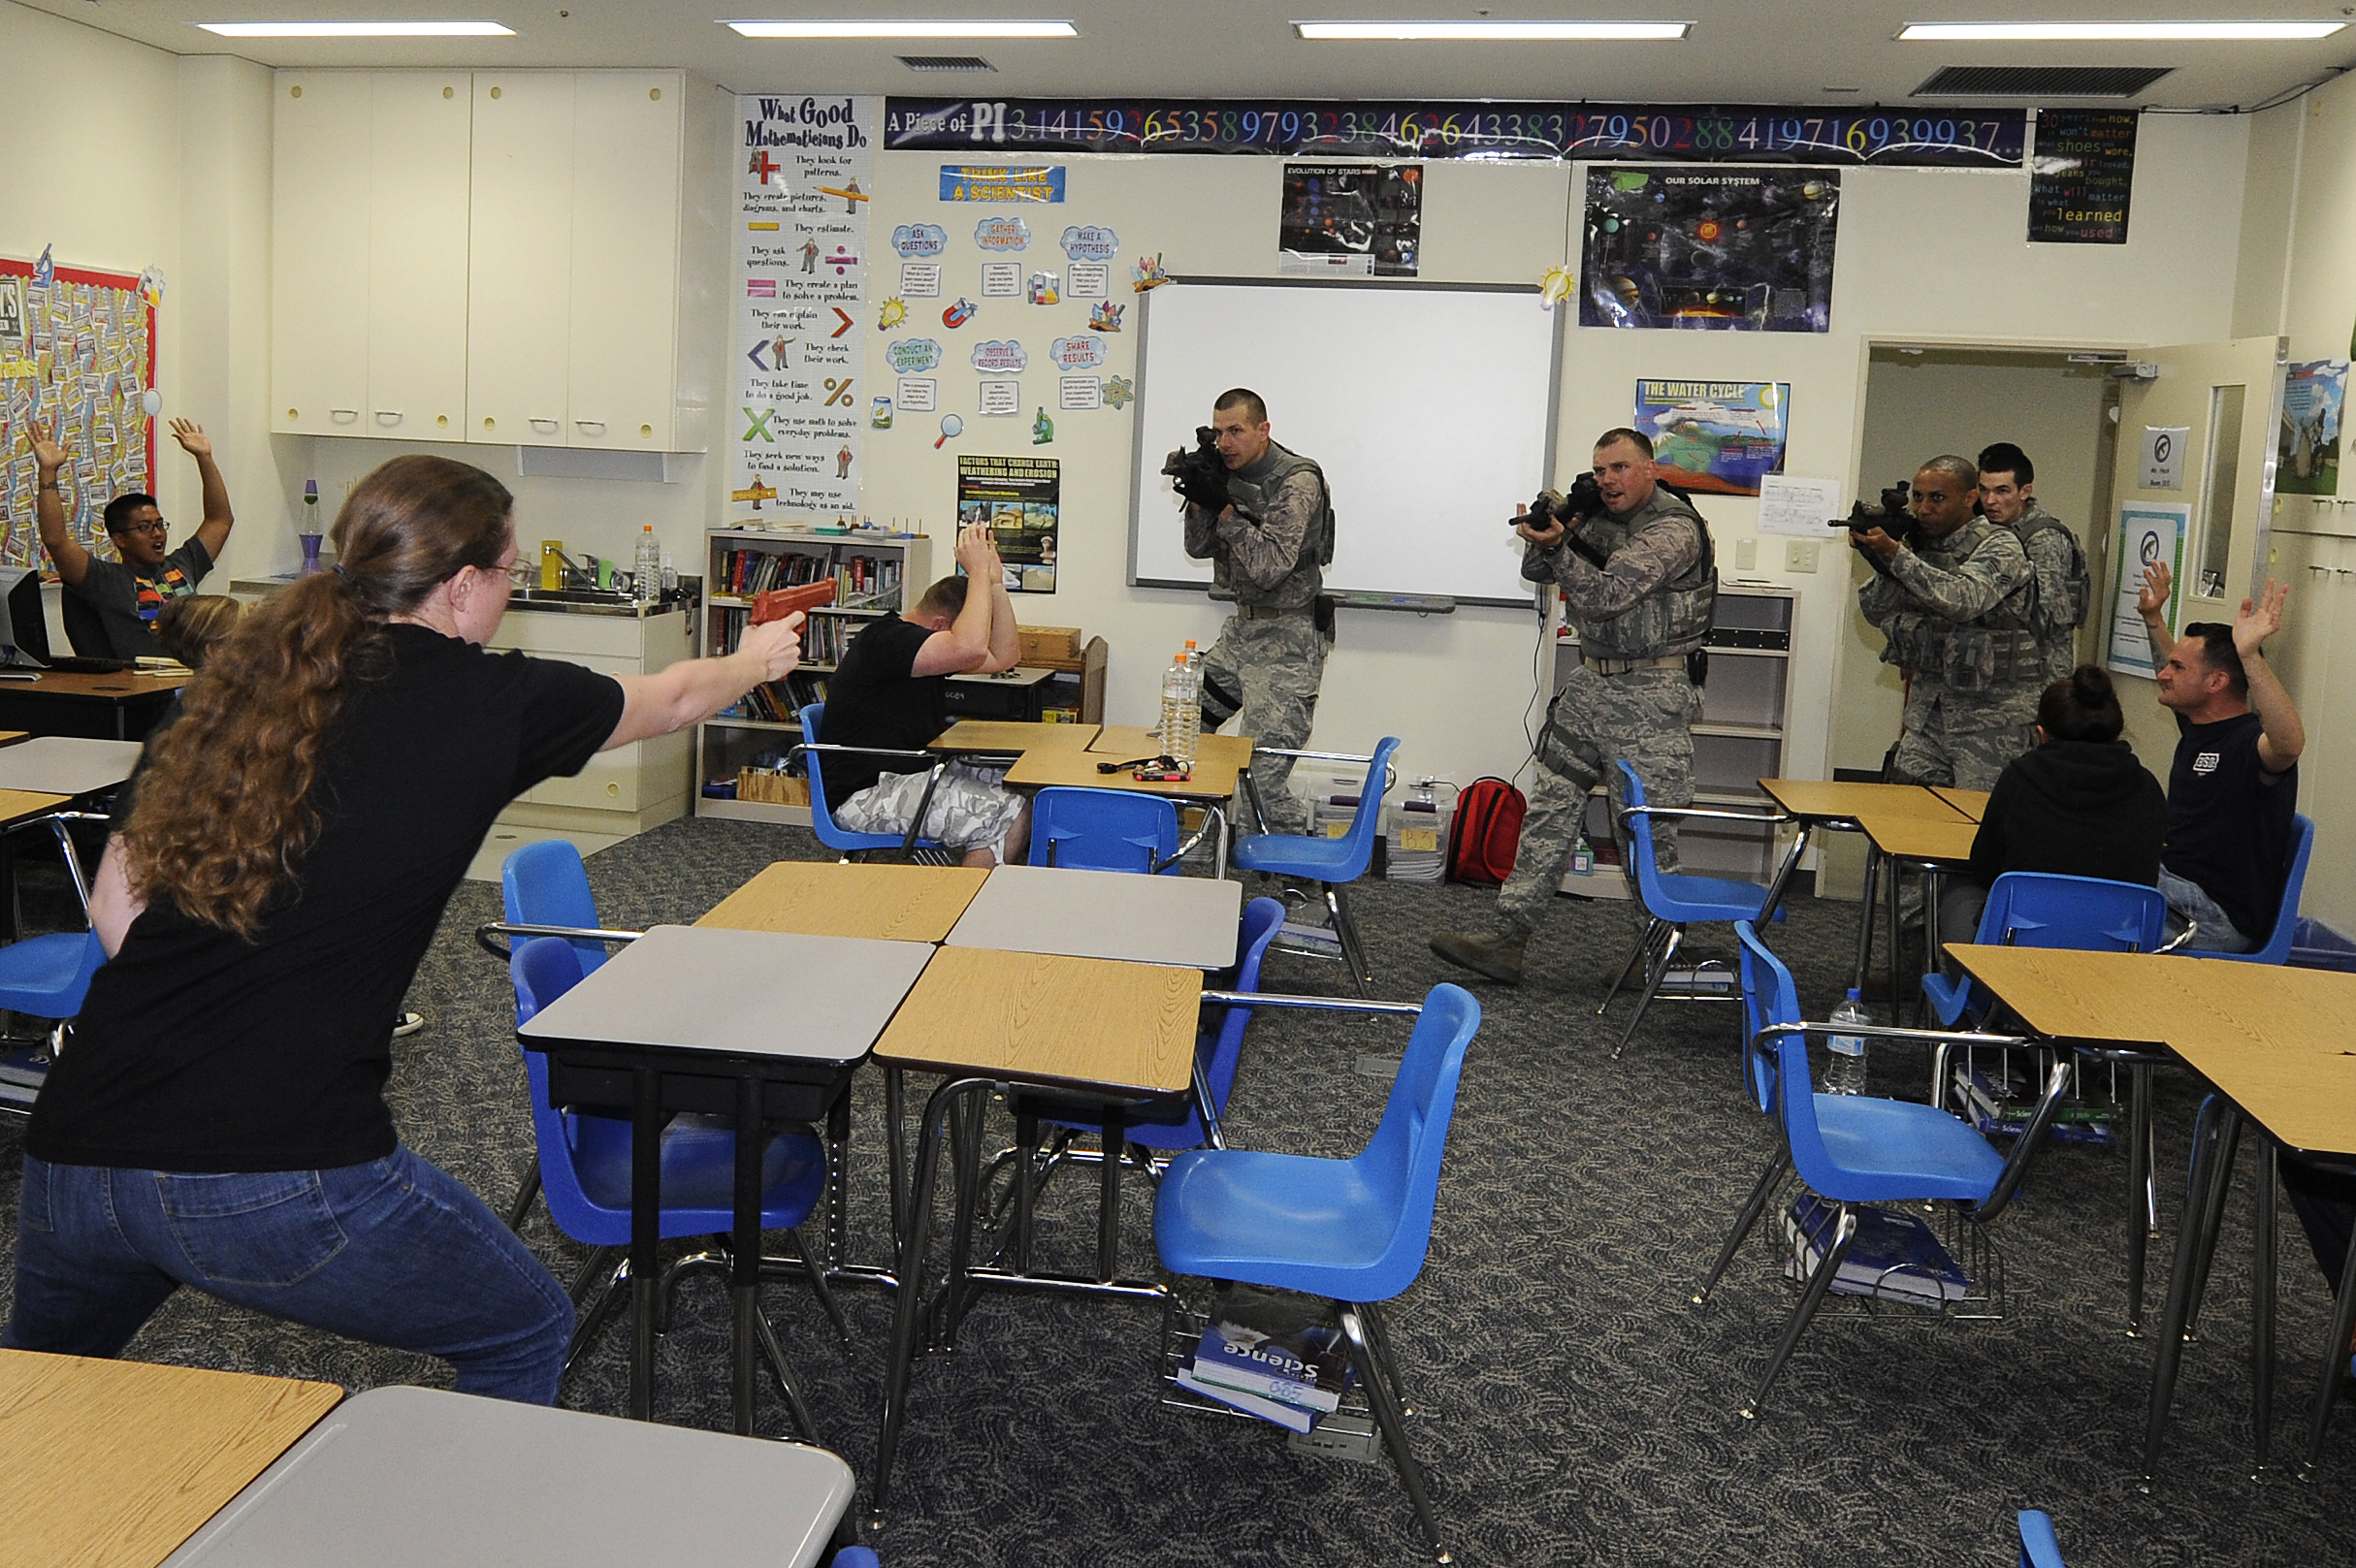 Active shooter training conducted in a classroom. (Courtesy of Pacific Air Forces)